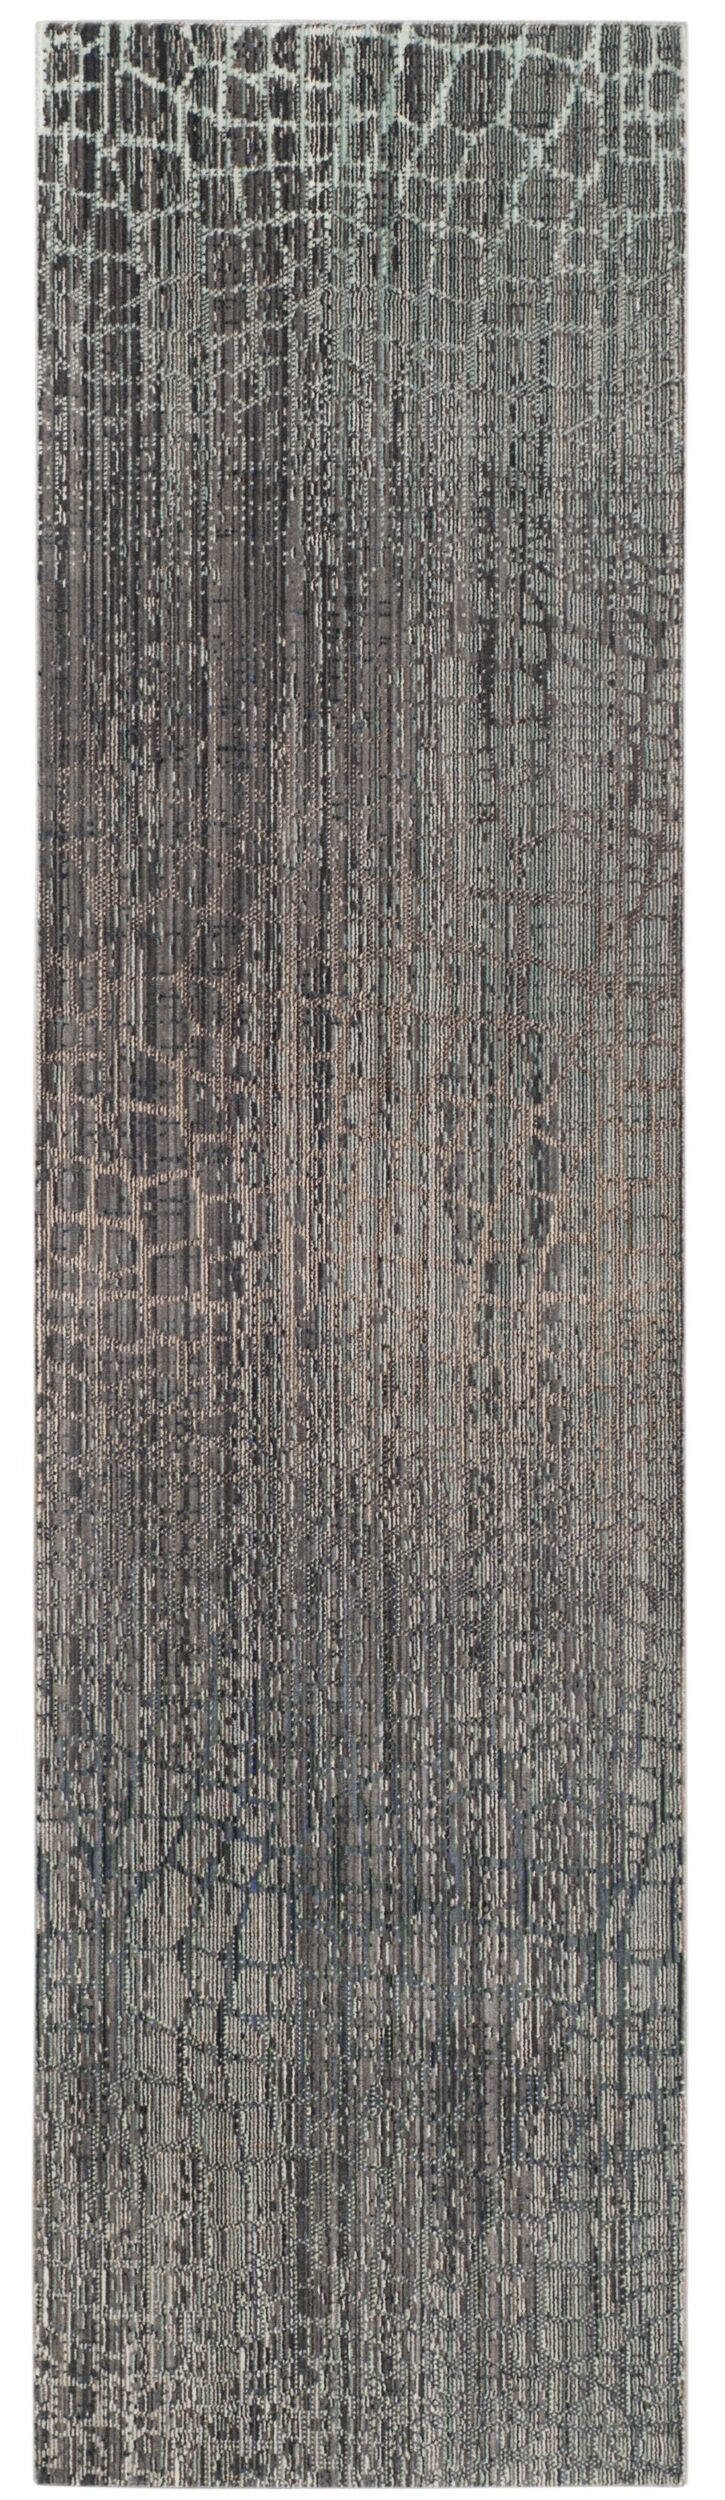 Boathaven Gray Area Rug Rug Size: Runner 2'3